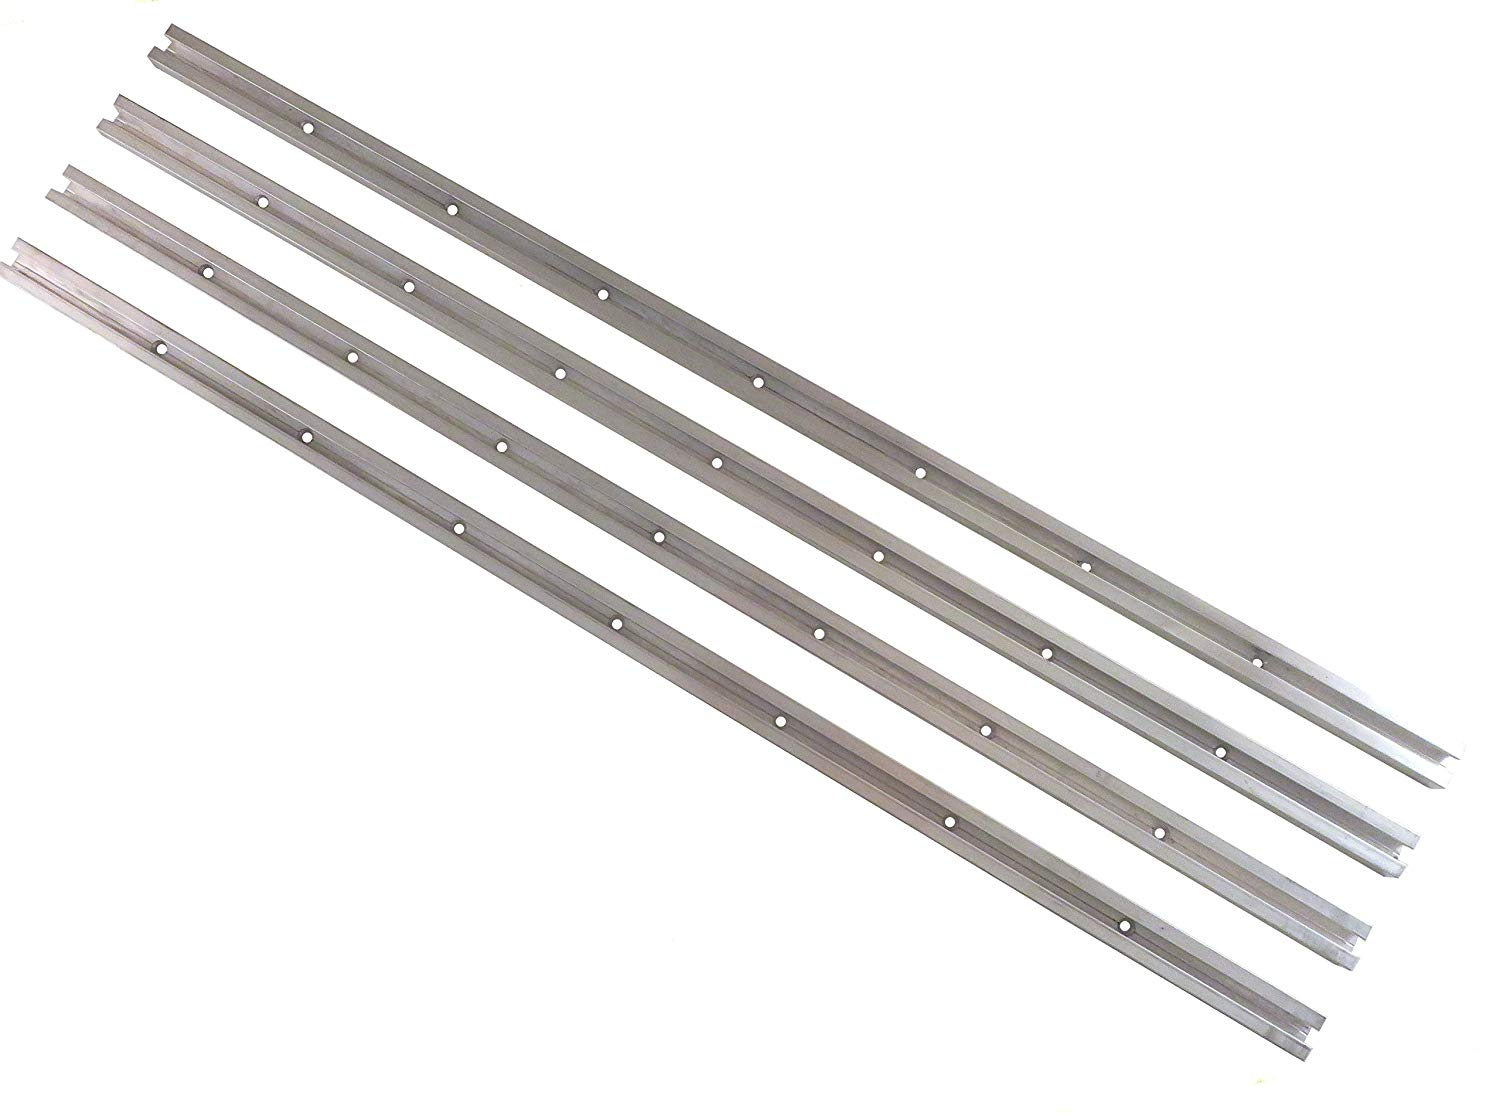 """Lot of 4 Each 24"""" Aluminum T Tracks 3/4"""" by 3/8"""" Slot Accepts Standard 1/4"""" Hex Bolt Head Predrilled Countersunk Holes Every 6"""" TT24X4"""